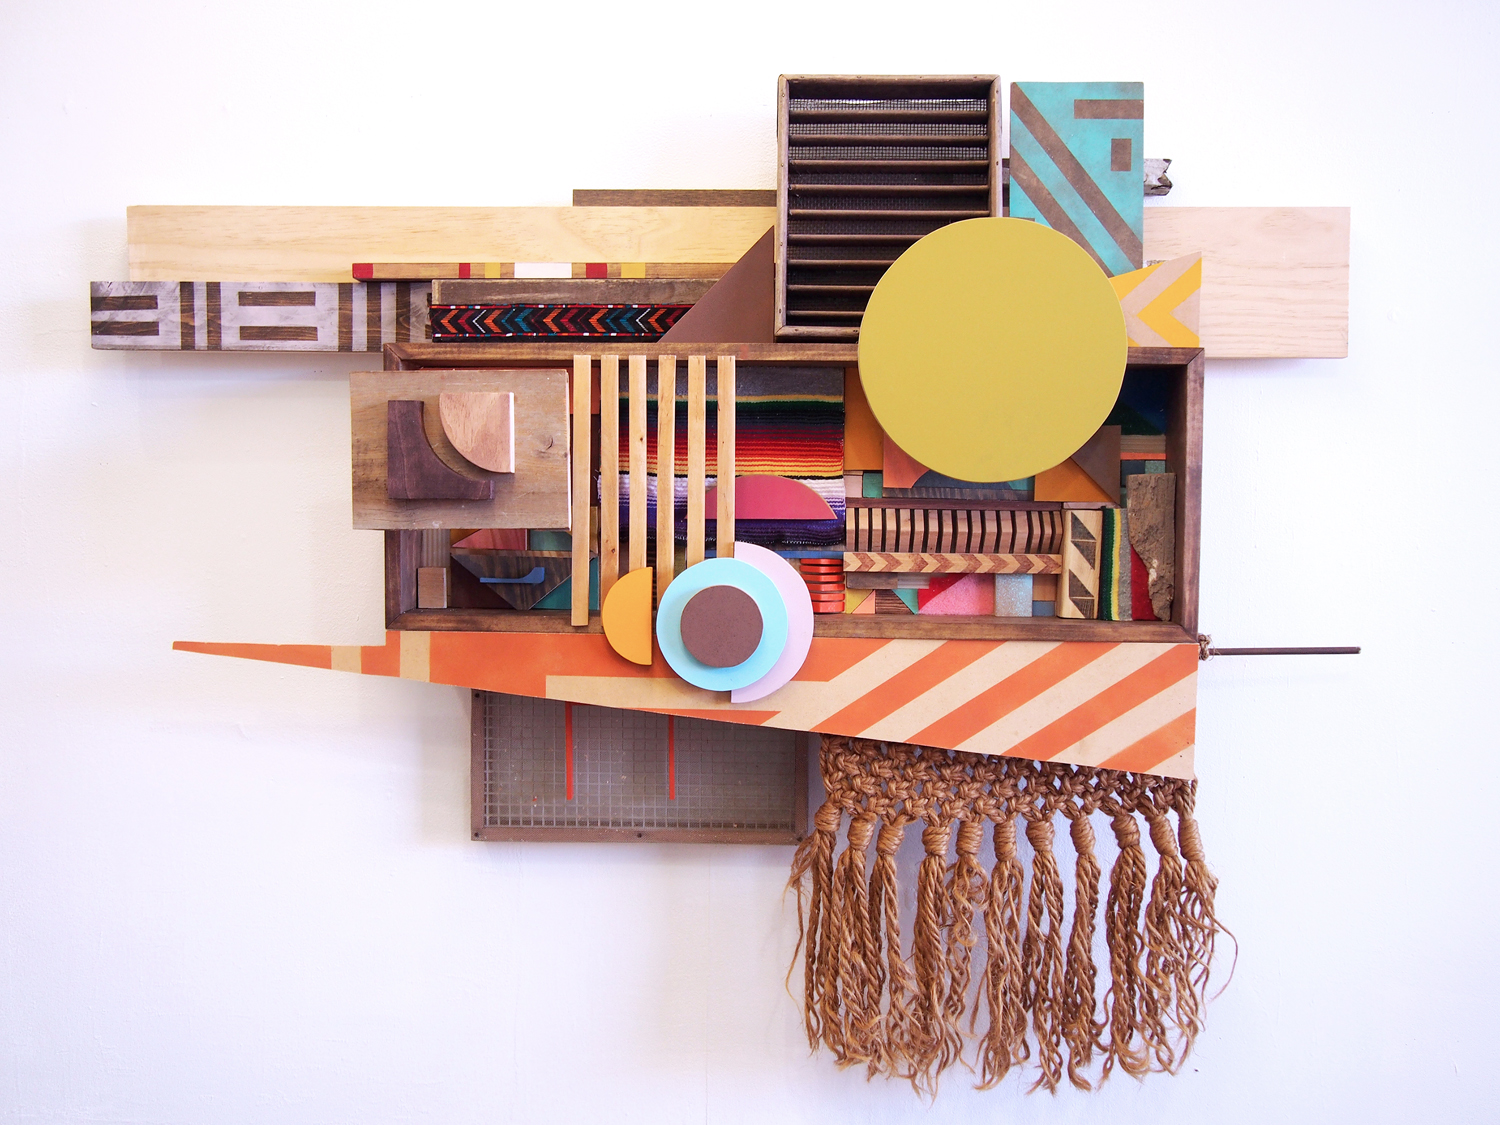 48x64x11 , wood, woven blanket, screens, scouring pads, macramé hanging, plastic, patterned bandana, acrylic paint, oil stain, 48 x 64 x 11 inches, 2017